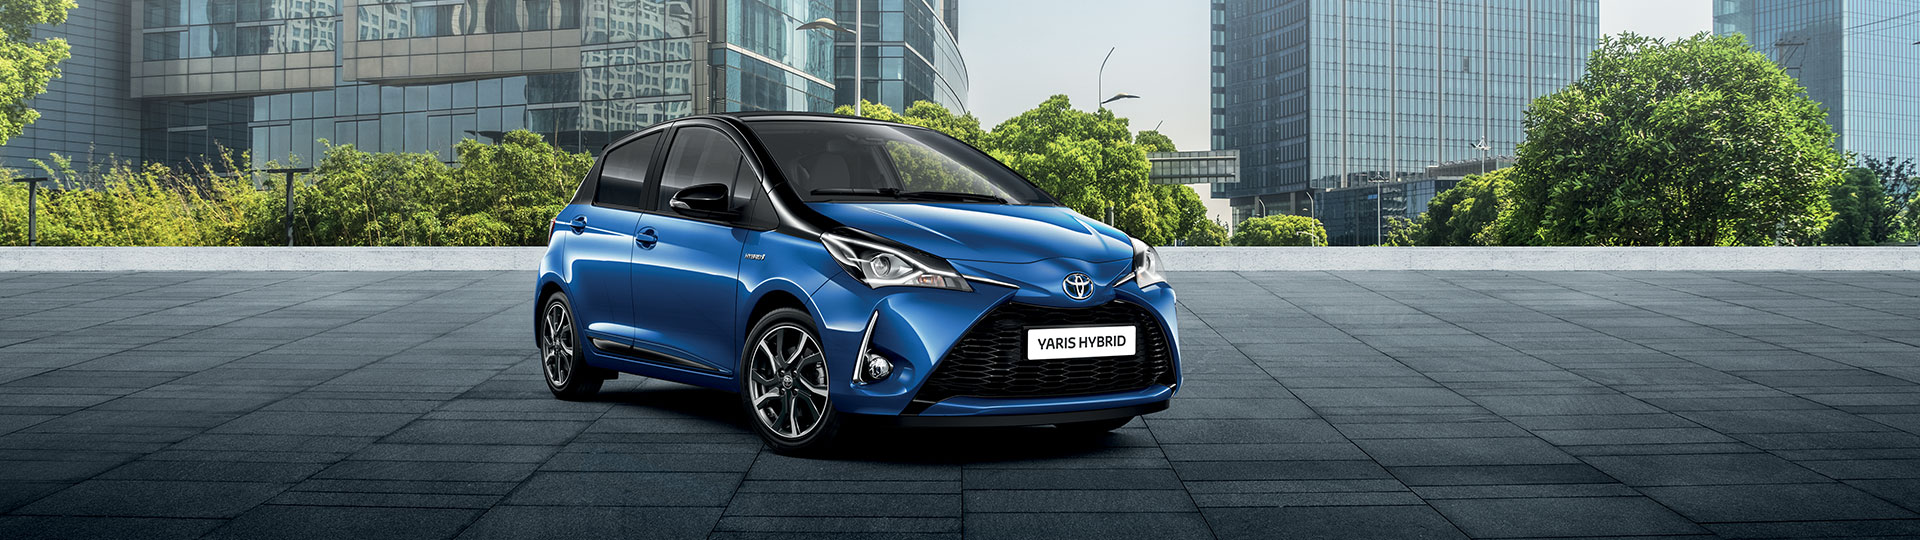 hd_toyota_yaris.jpg